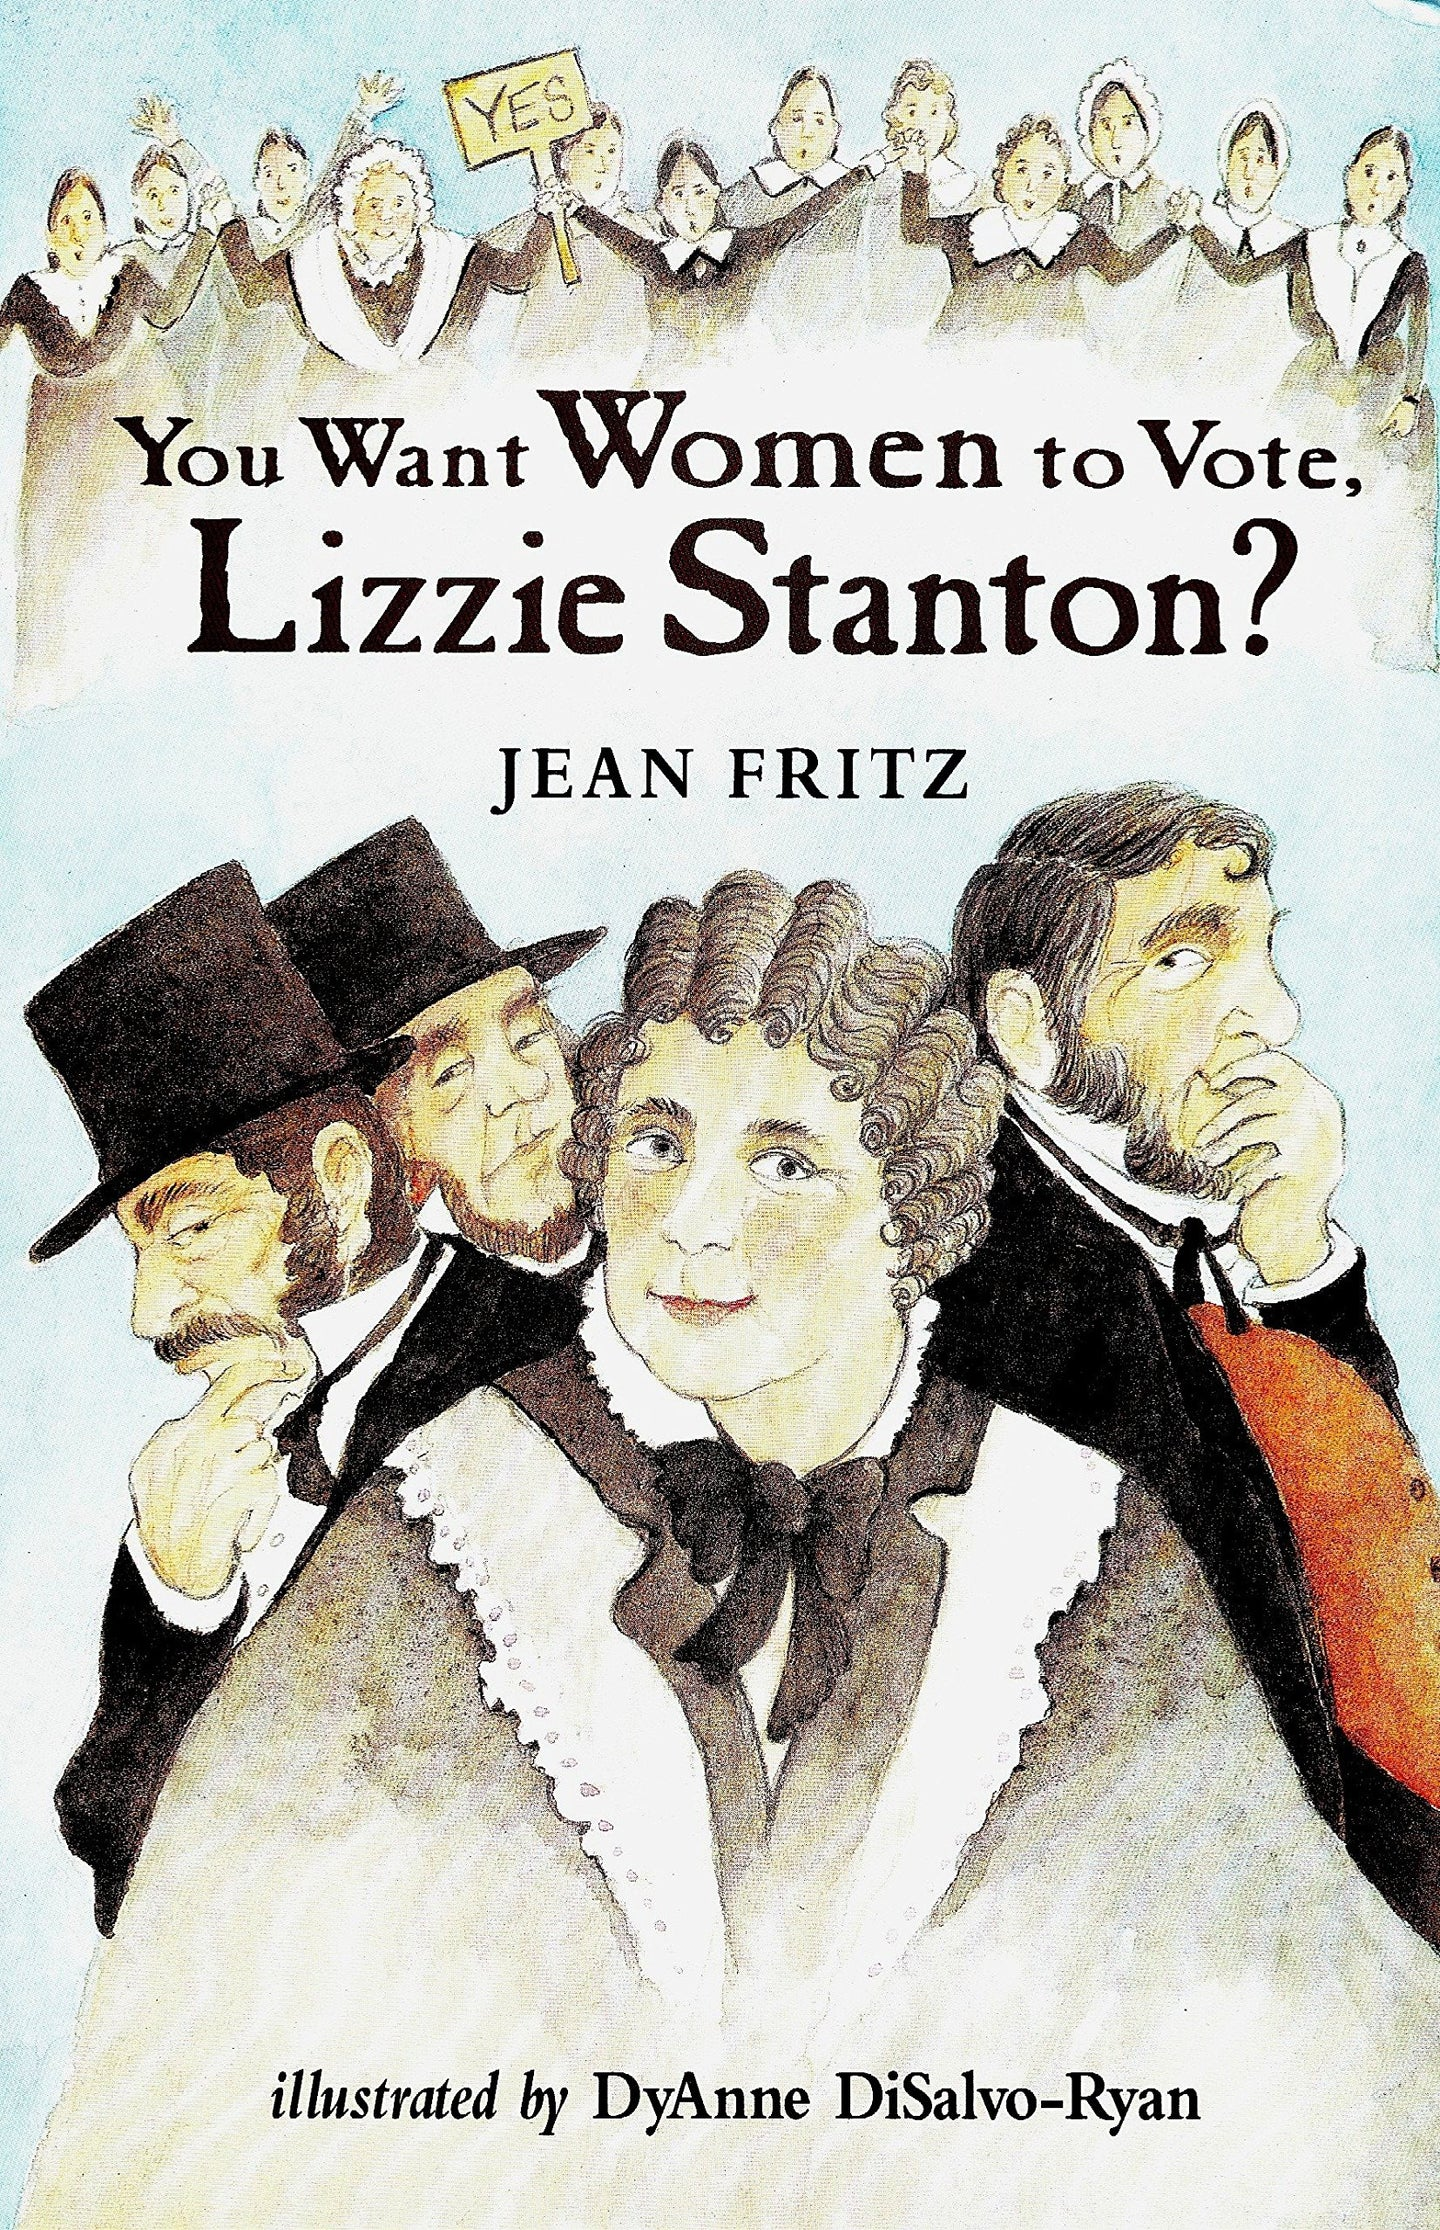 You Want Women to Vote, Lizzie Stanton? - by Jean Fritz - Little Green Schoolhouse Books